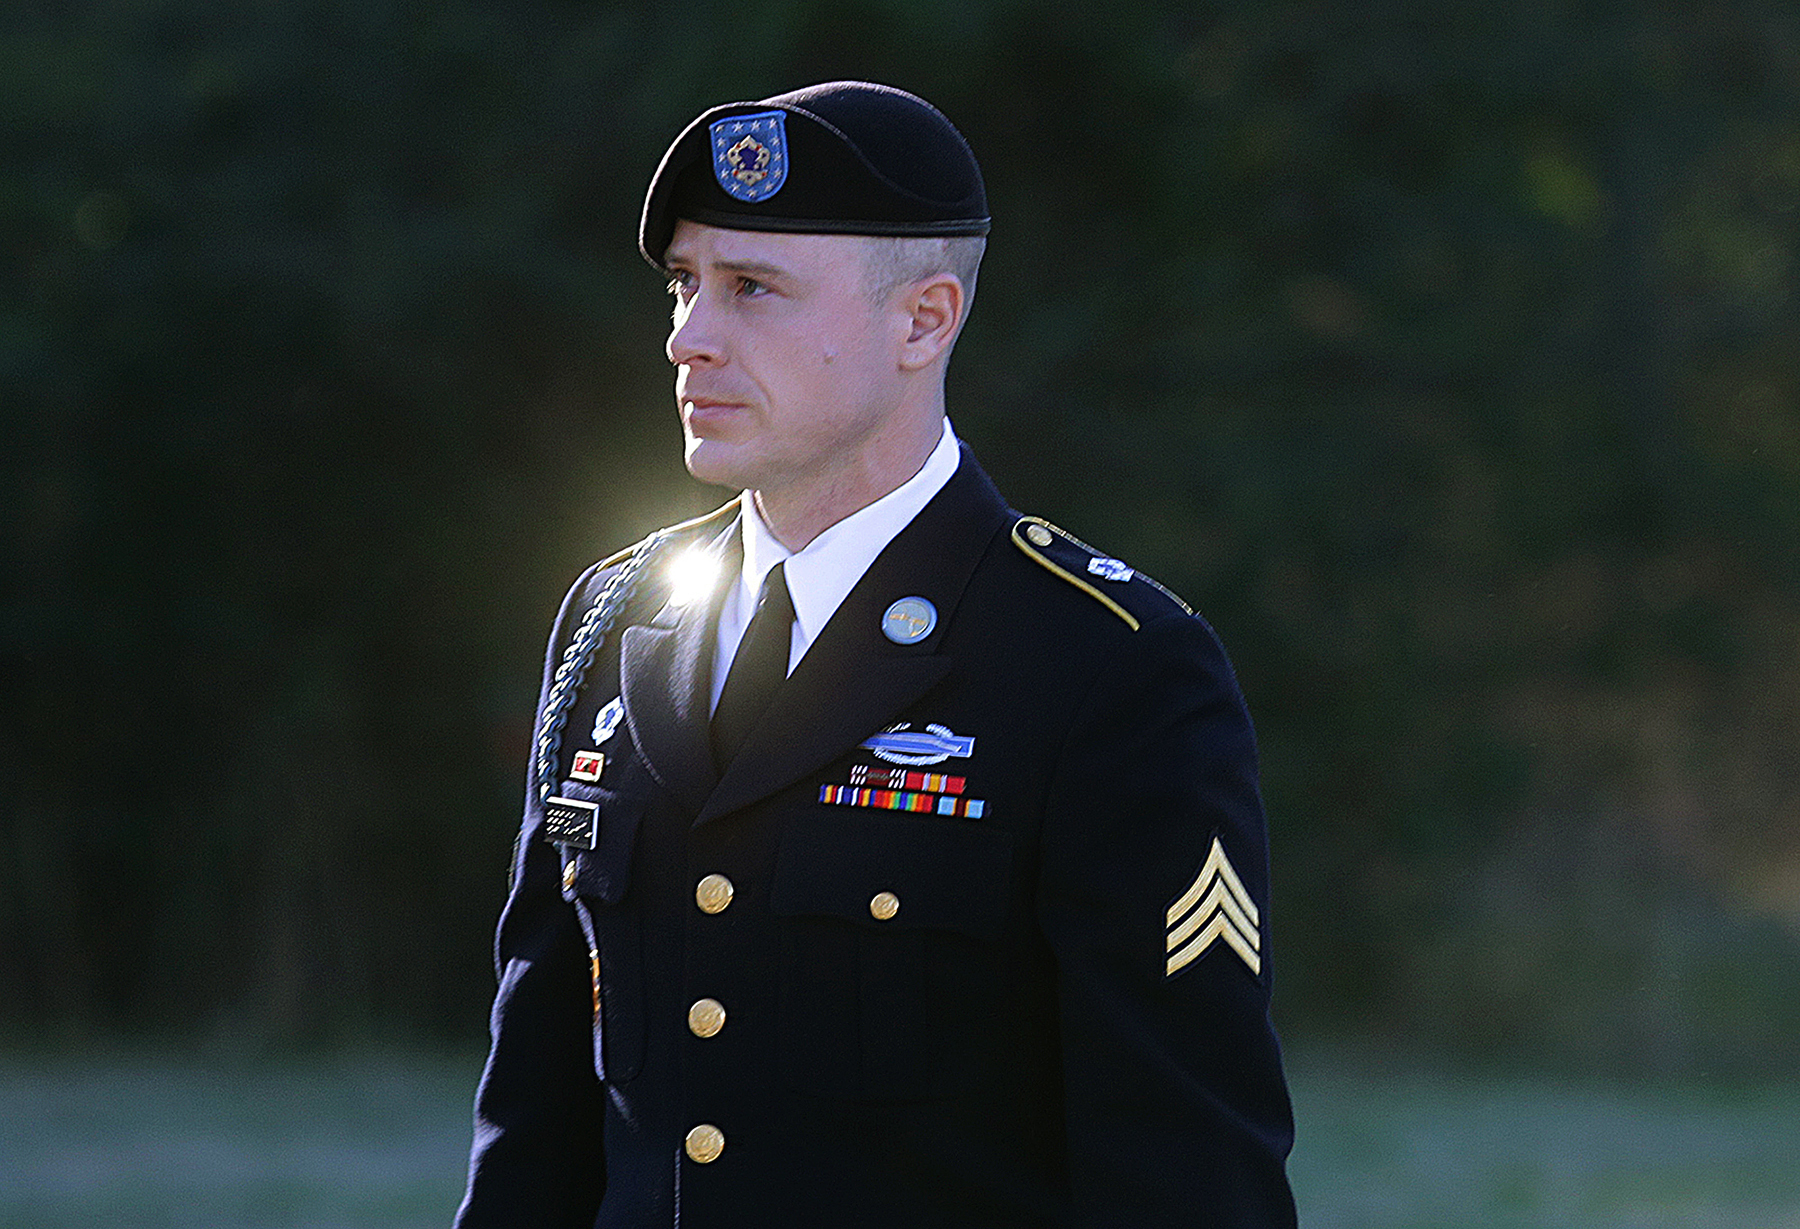 Bowe Bergdahl to Enter Plea in Army Desertion Case